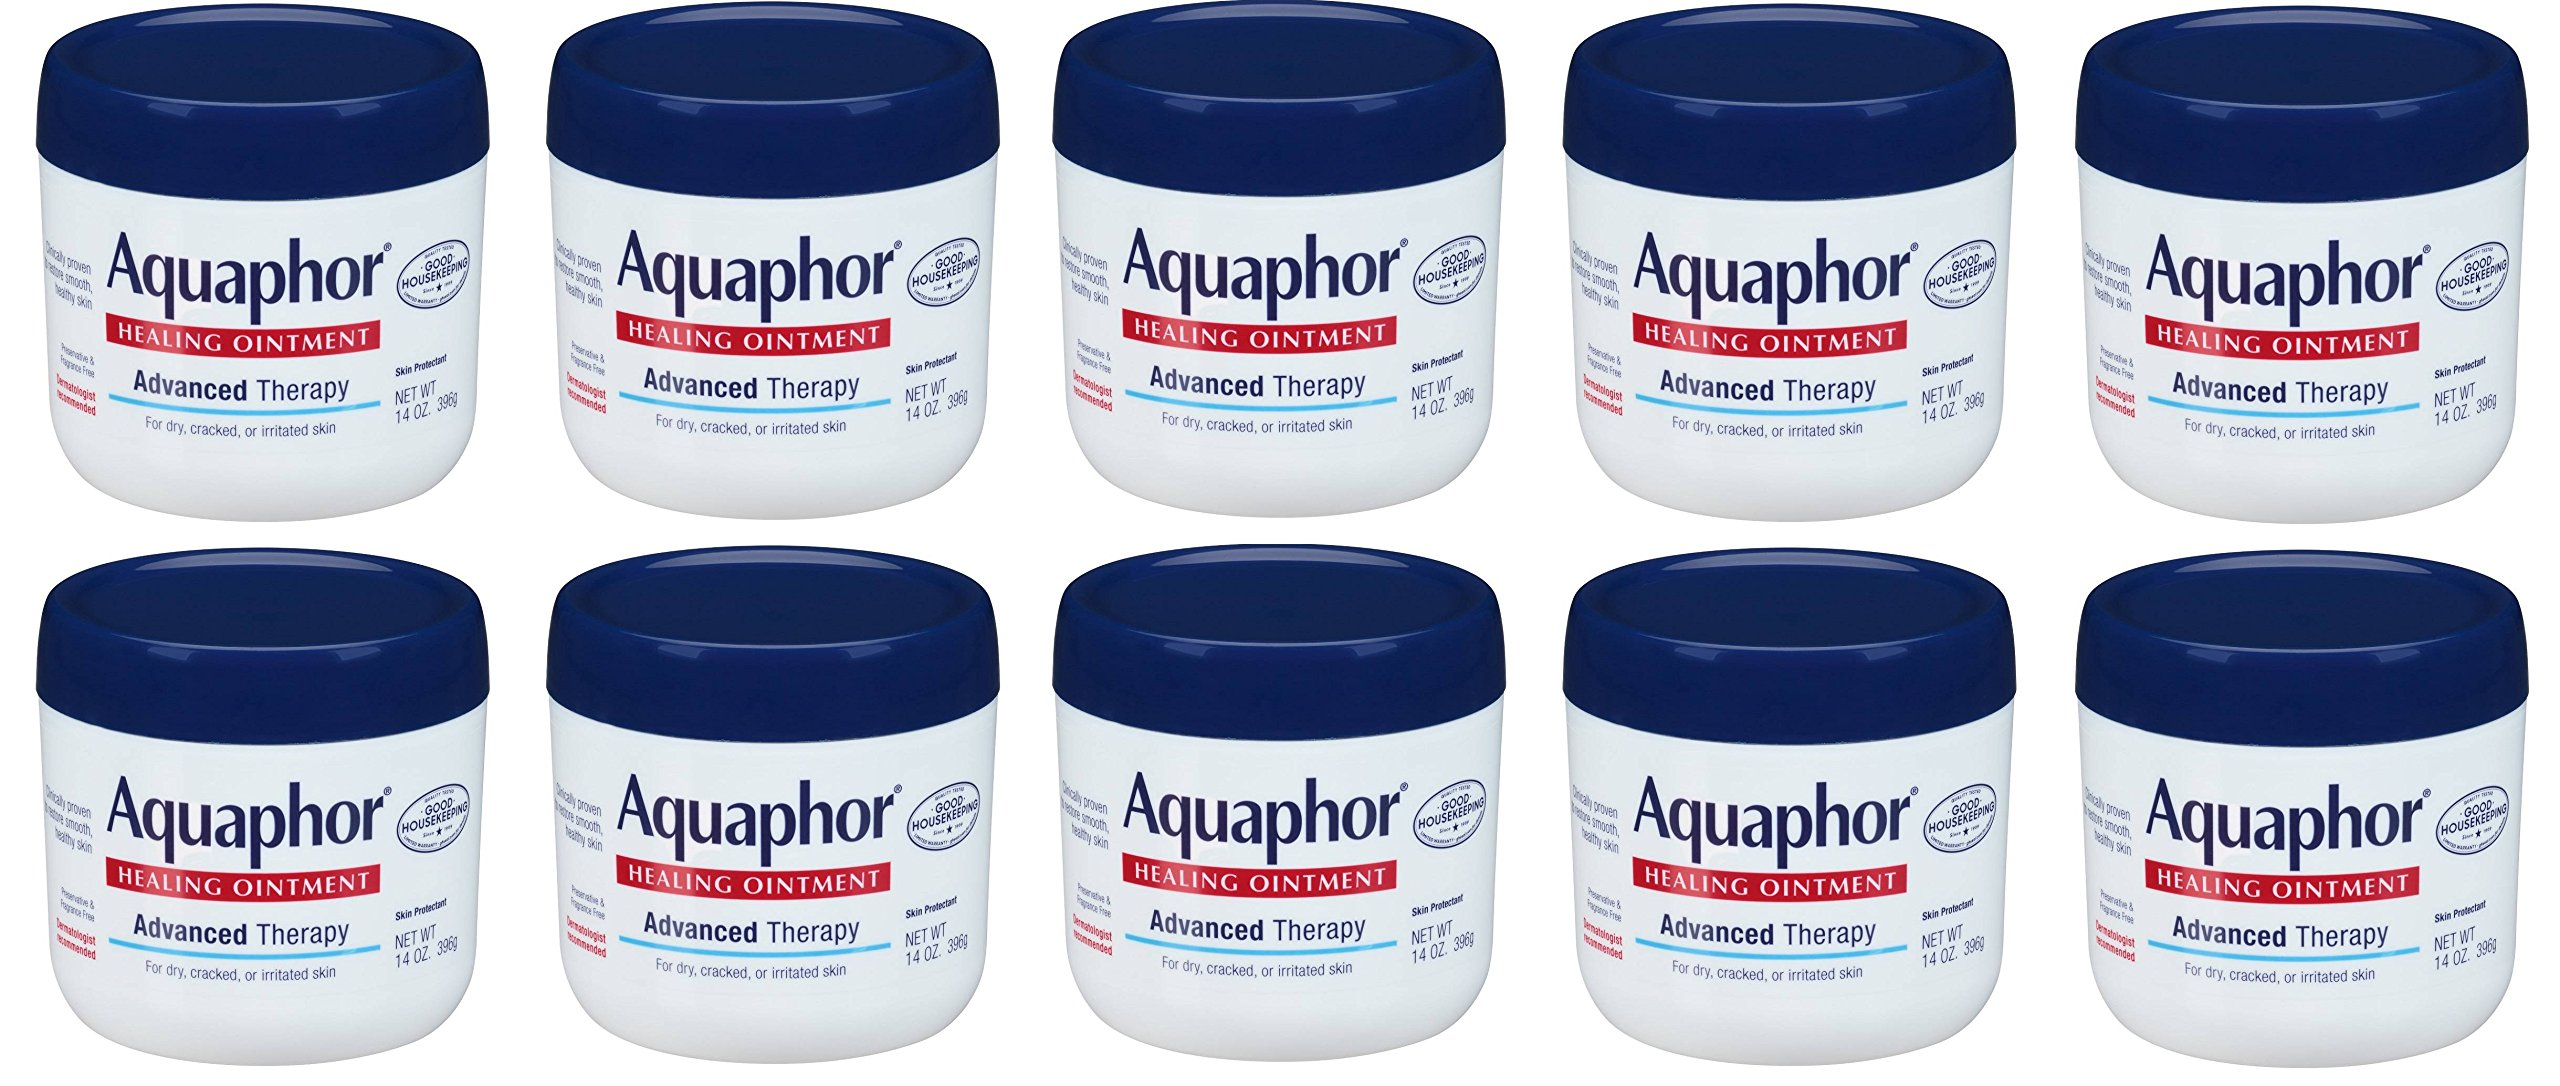 Aquaphor Advanced Therapy Healing Ointment brtfEy Skin Protectant, 10 Pack (14 Ounce)